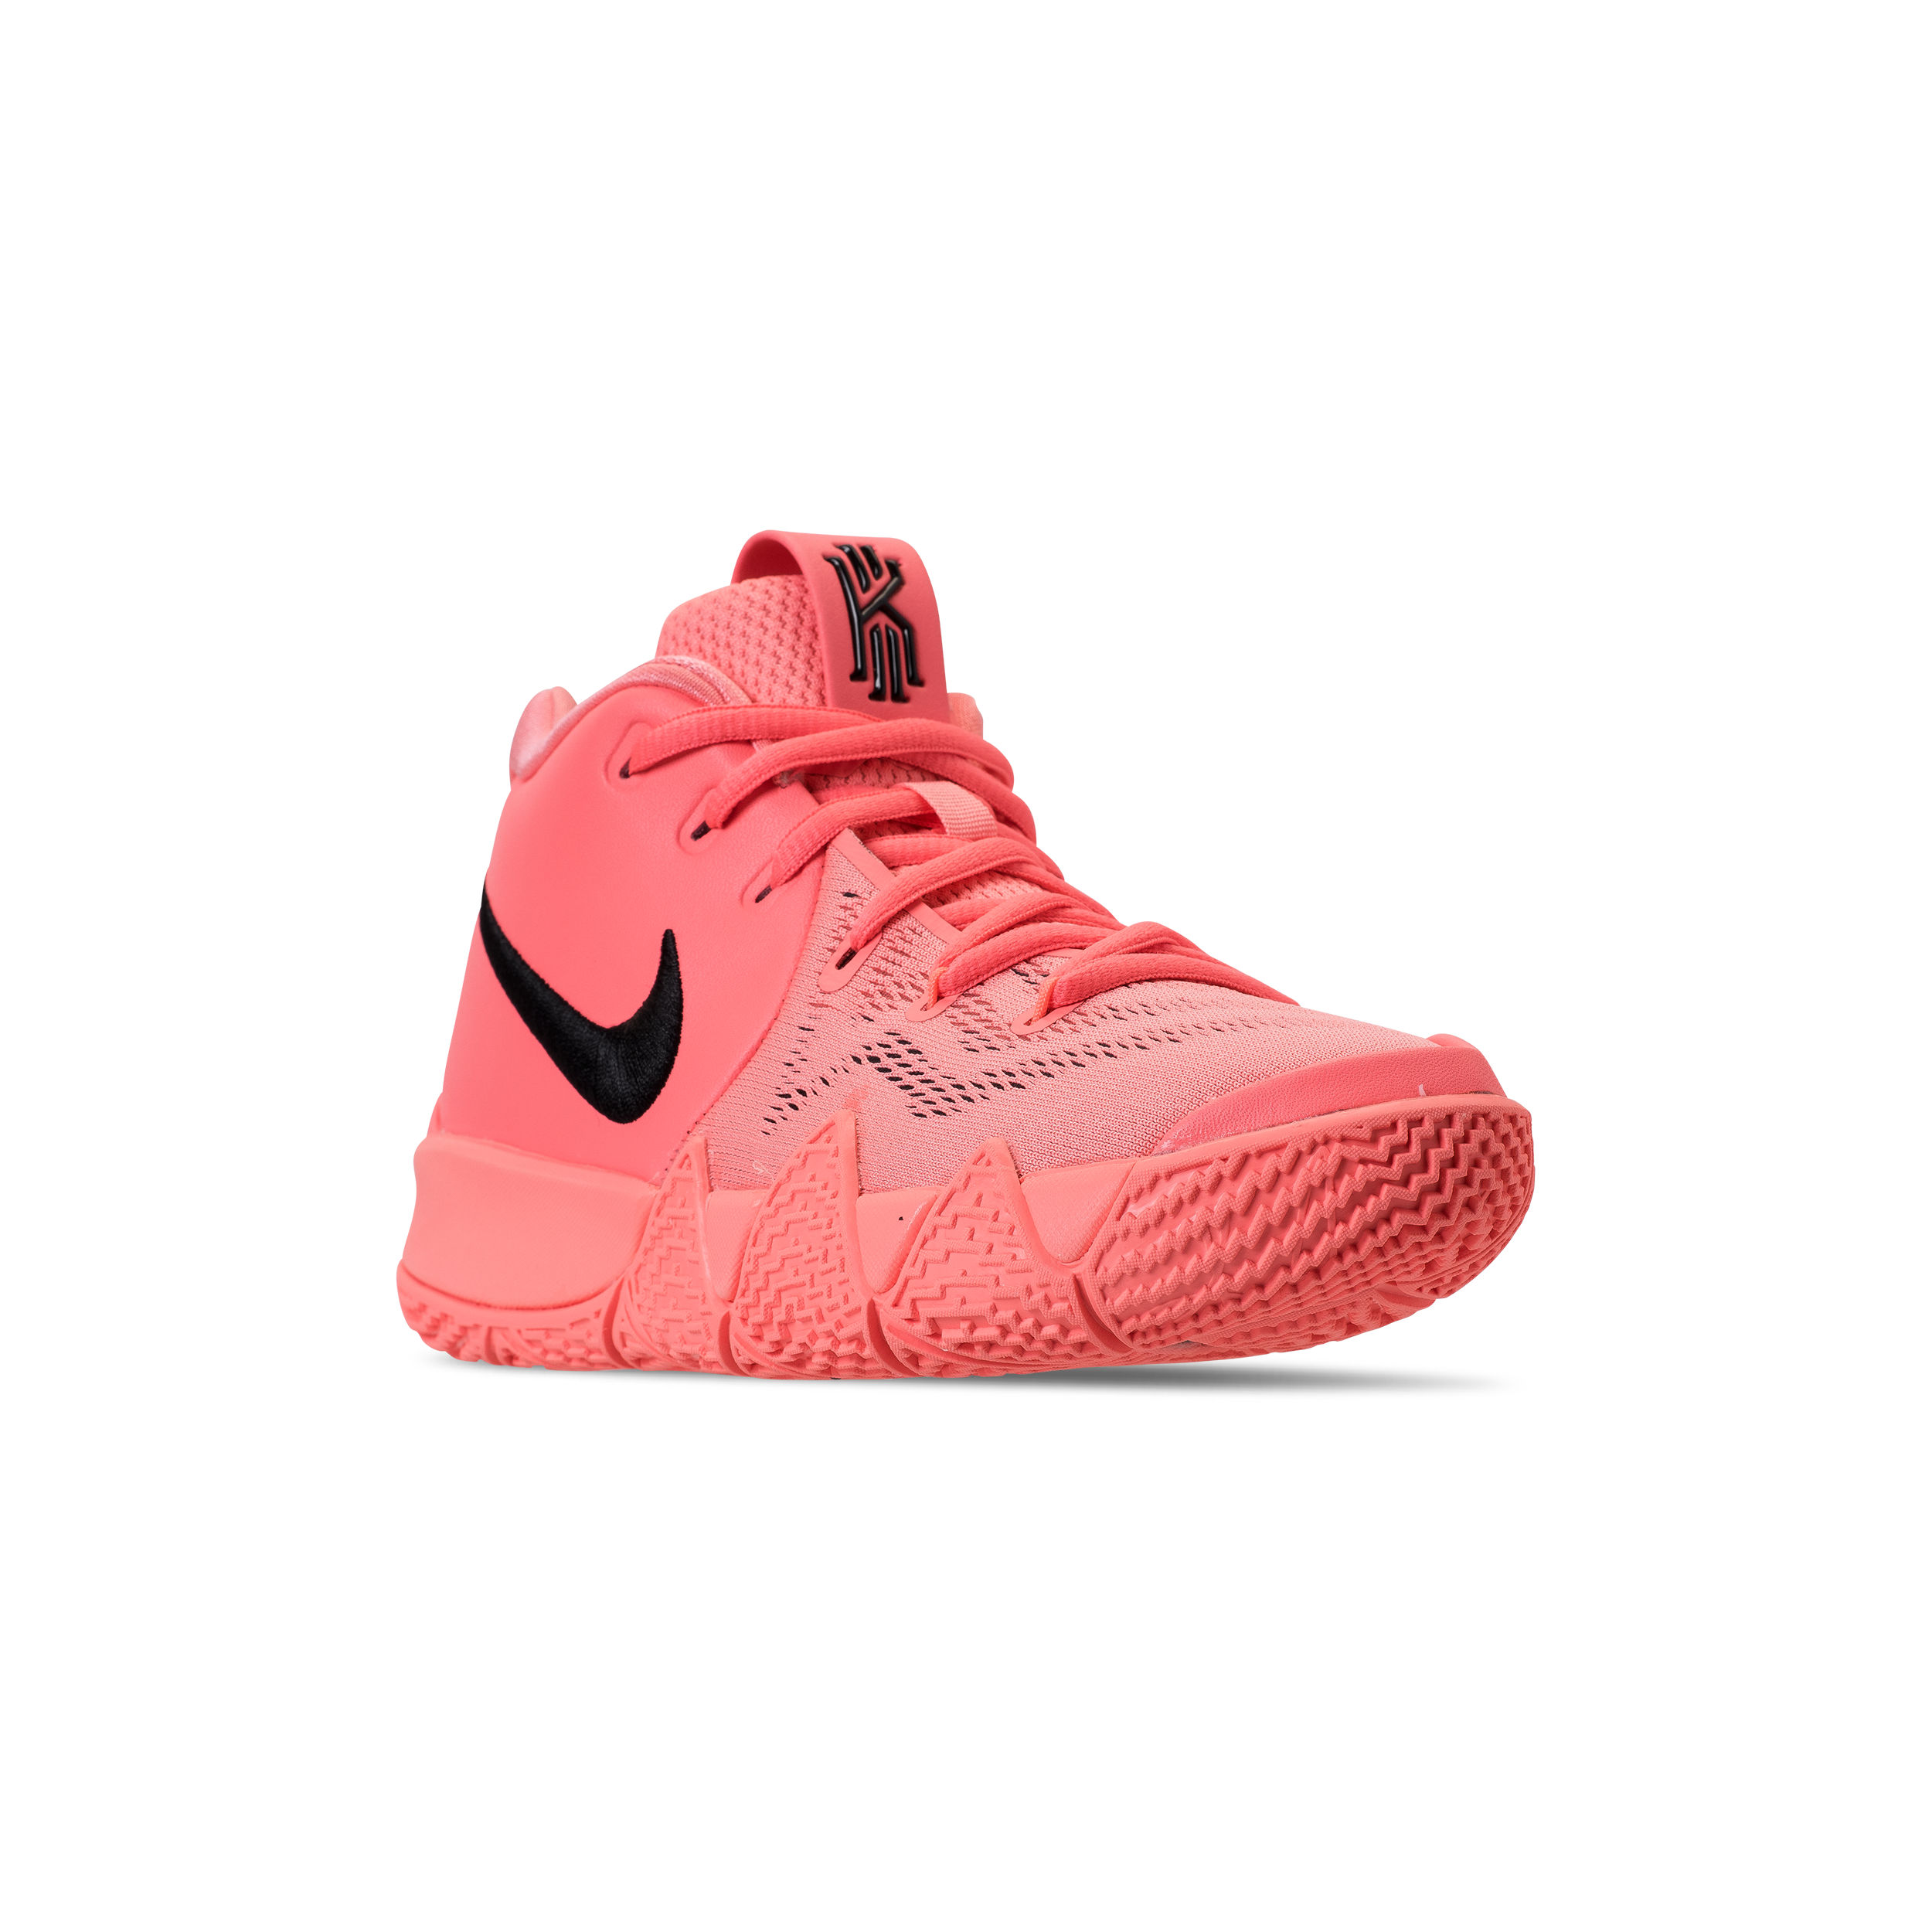 new style 9fd17 a8bfd The Nike Kyrie 4 Goes Atomic Pink for June - WearTesters